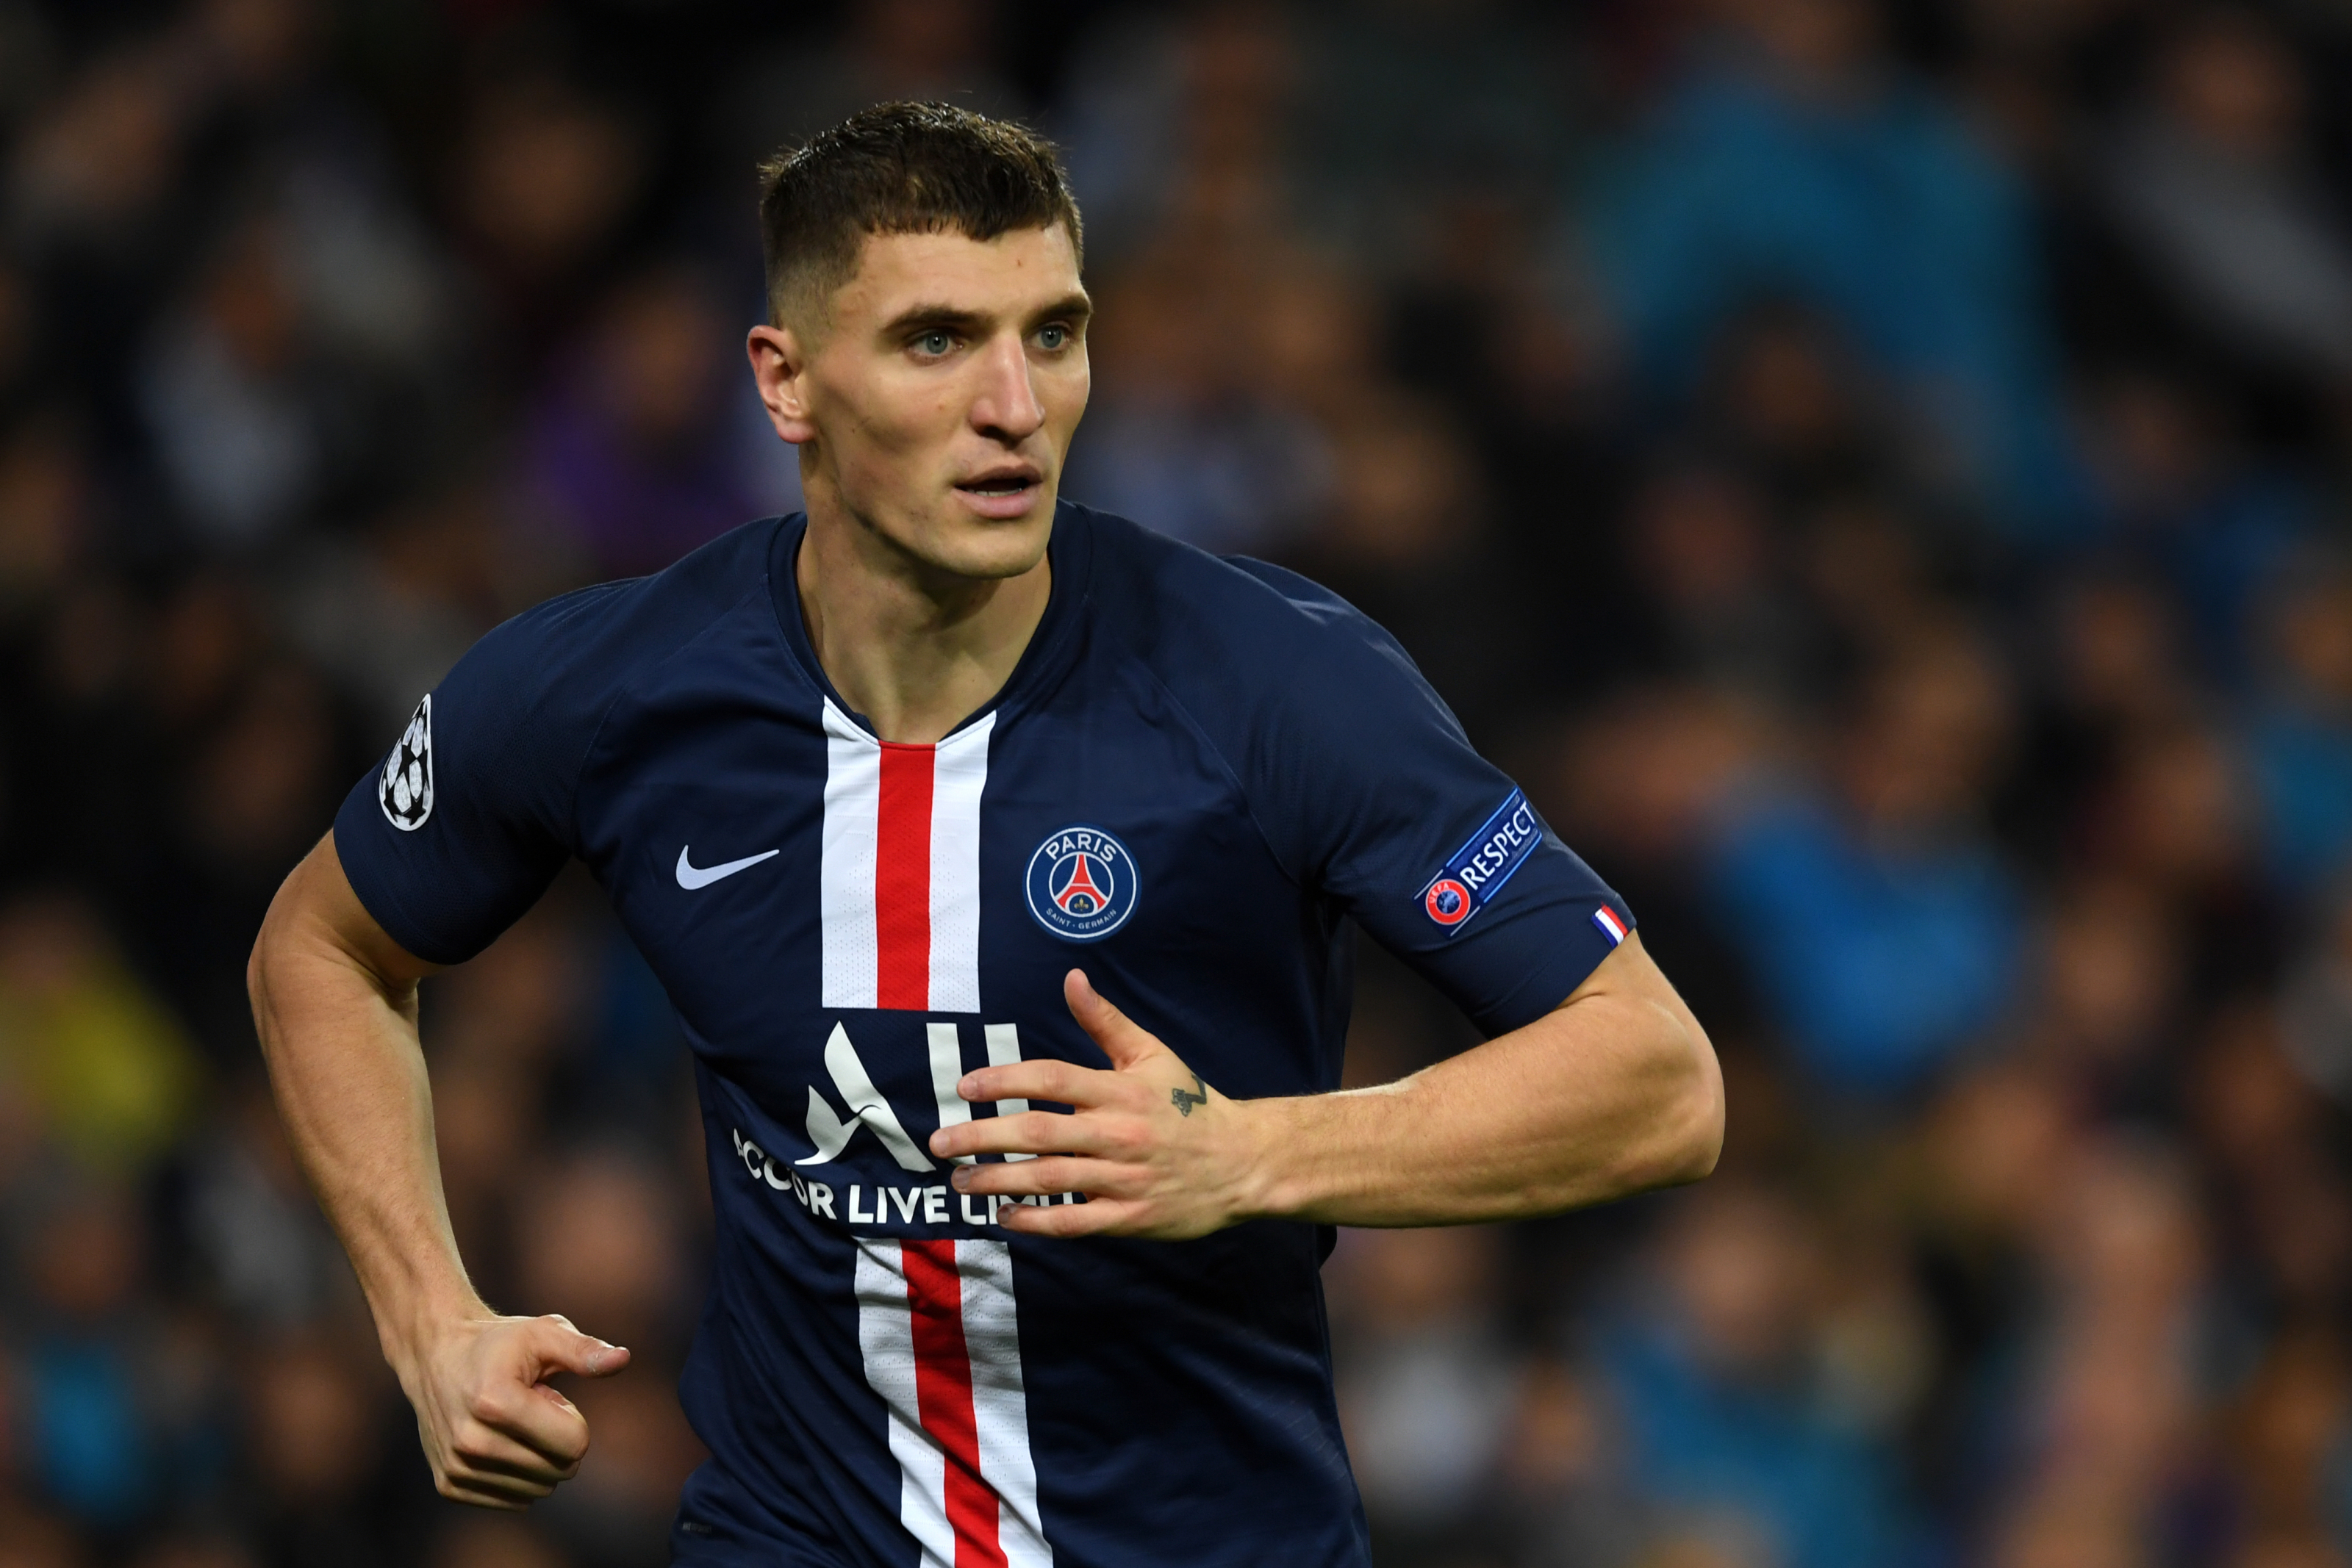 Borussia Dortmund on the verge of signing PSG right-back Thomas Meunier